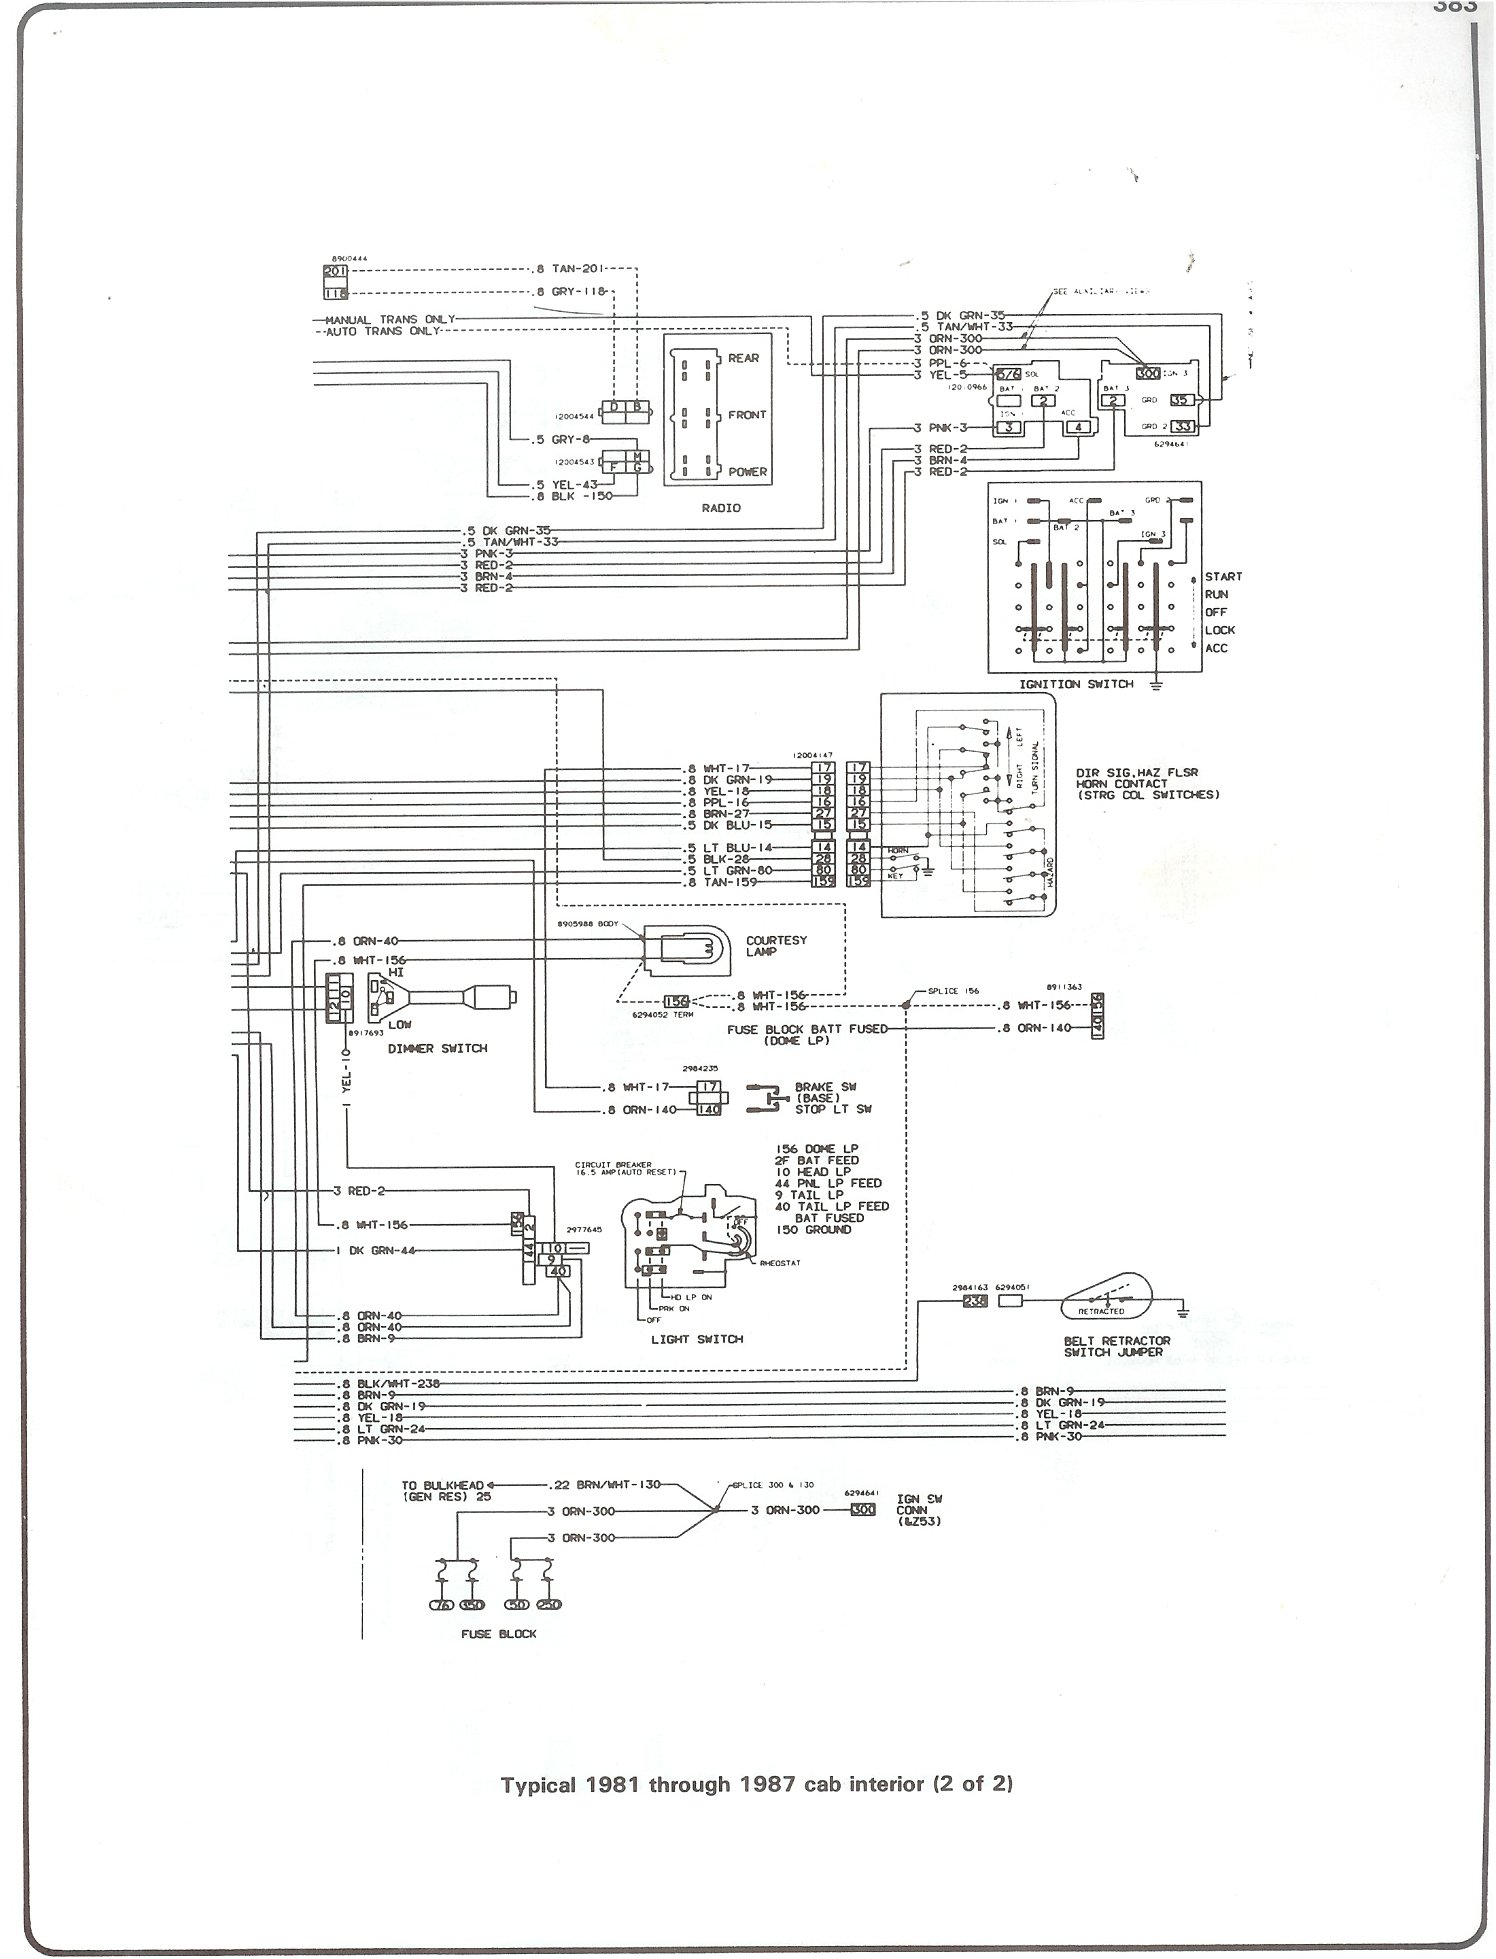 84 Ford Ranger Engine Wiring Diagram Archive Of Automotive Fuse Box 1987 Gmc Sierra Detailed Schematics Rh Jvpacks Com